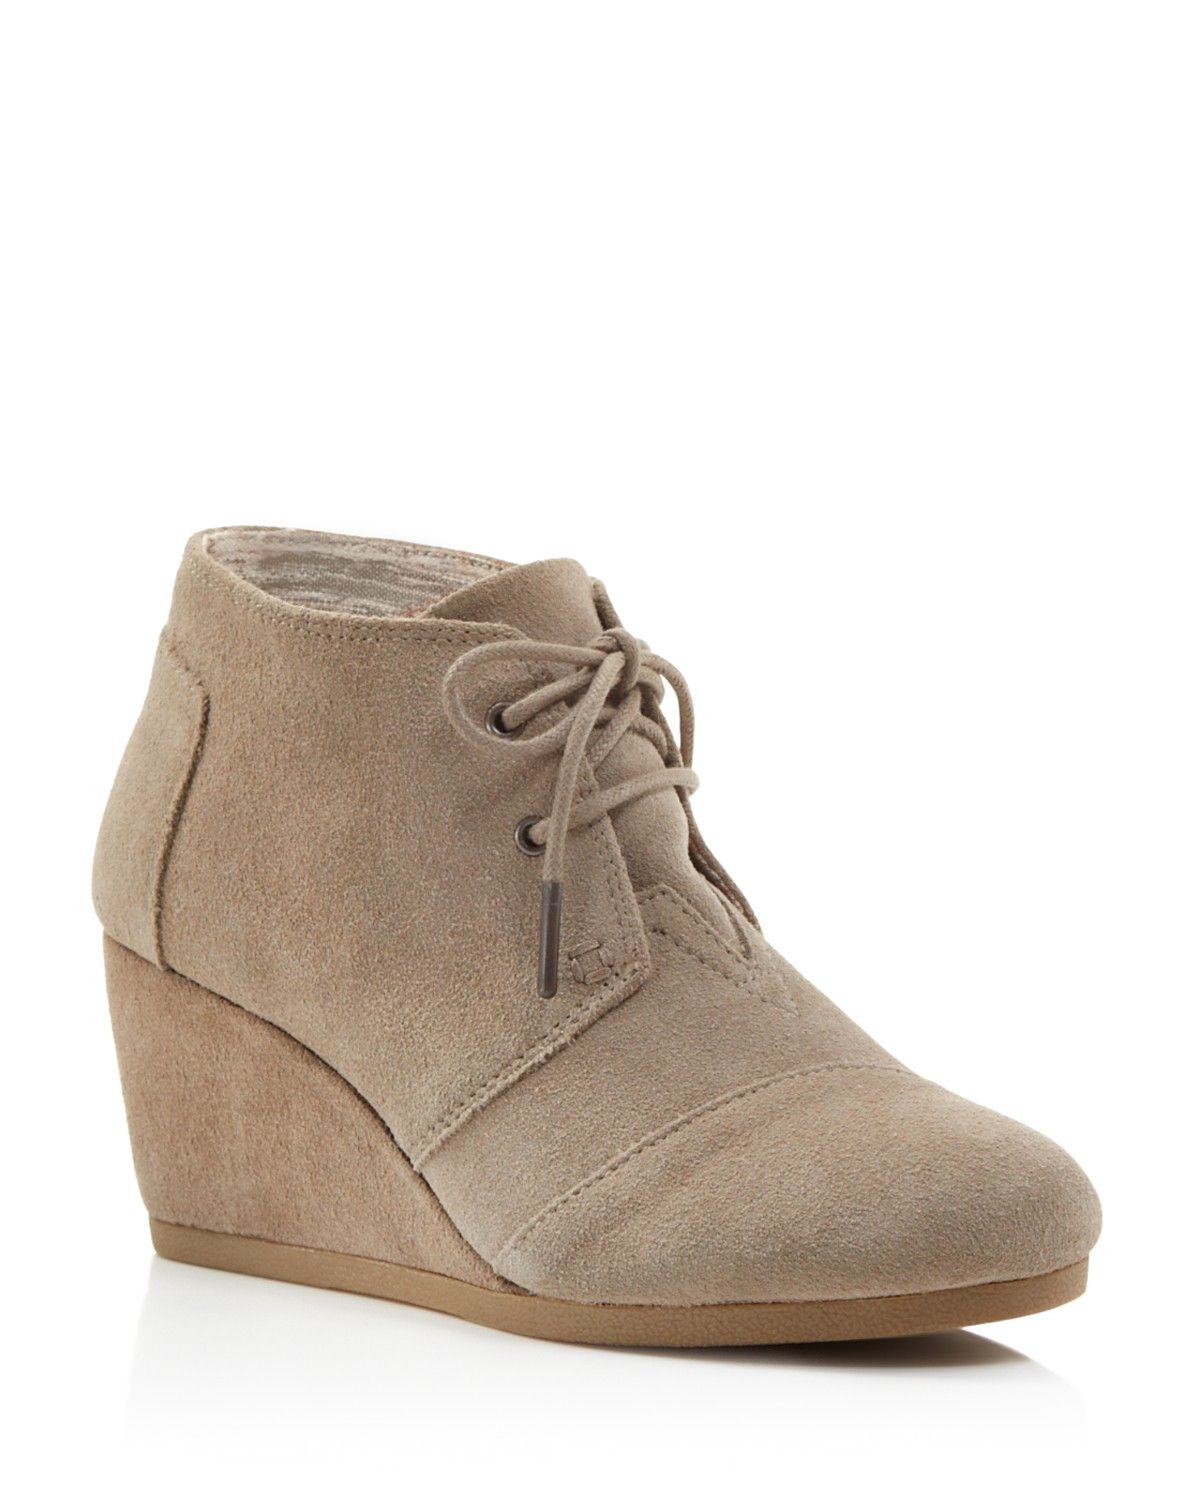 0b915cb606b TOMS Suede Desert Wedge Booties